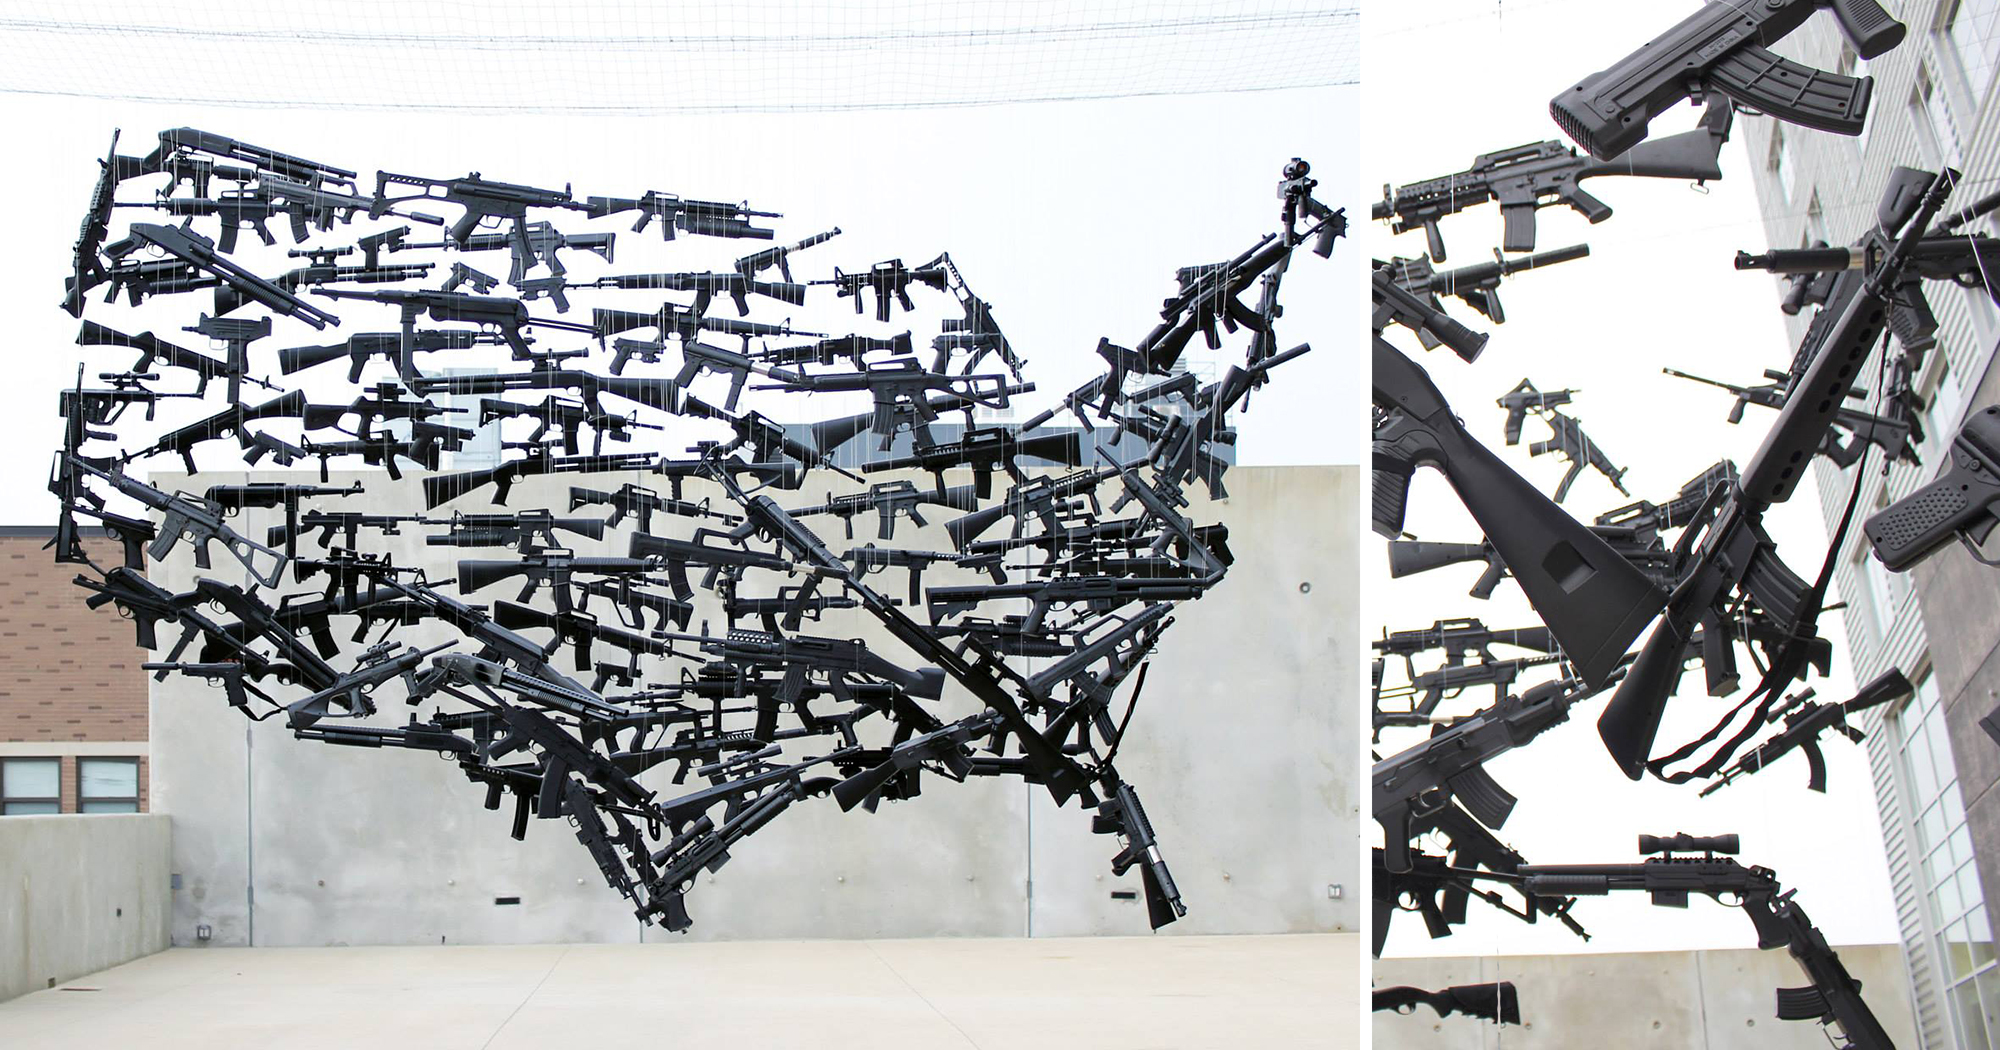 Line Art Usa Map : Gun country a map of the usa consisting toy guns bored panda